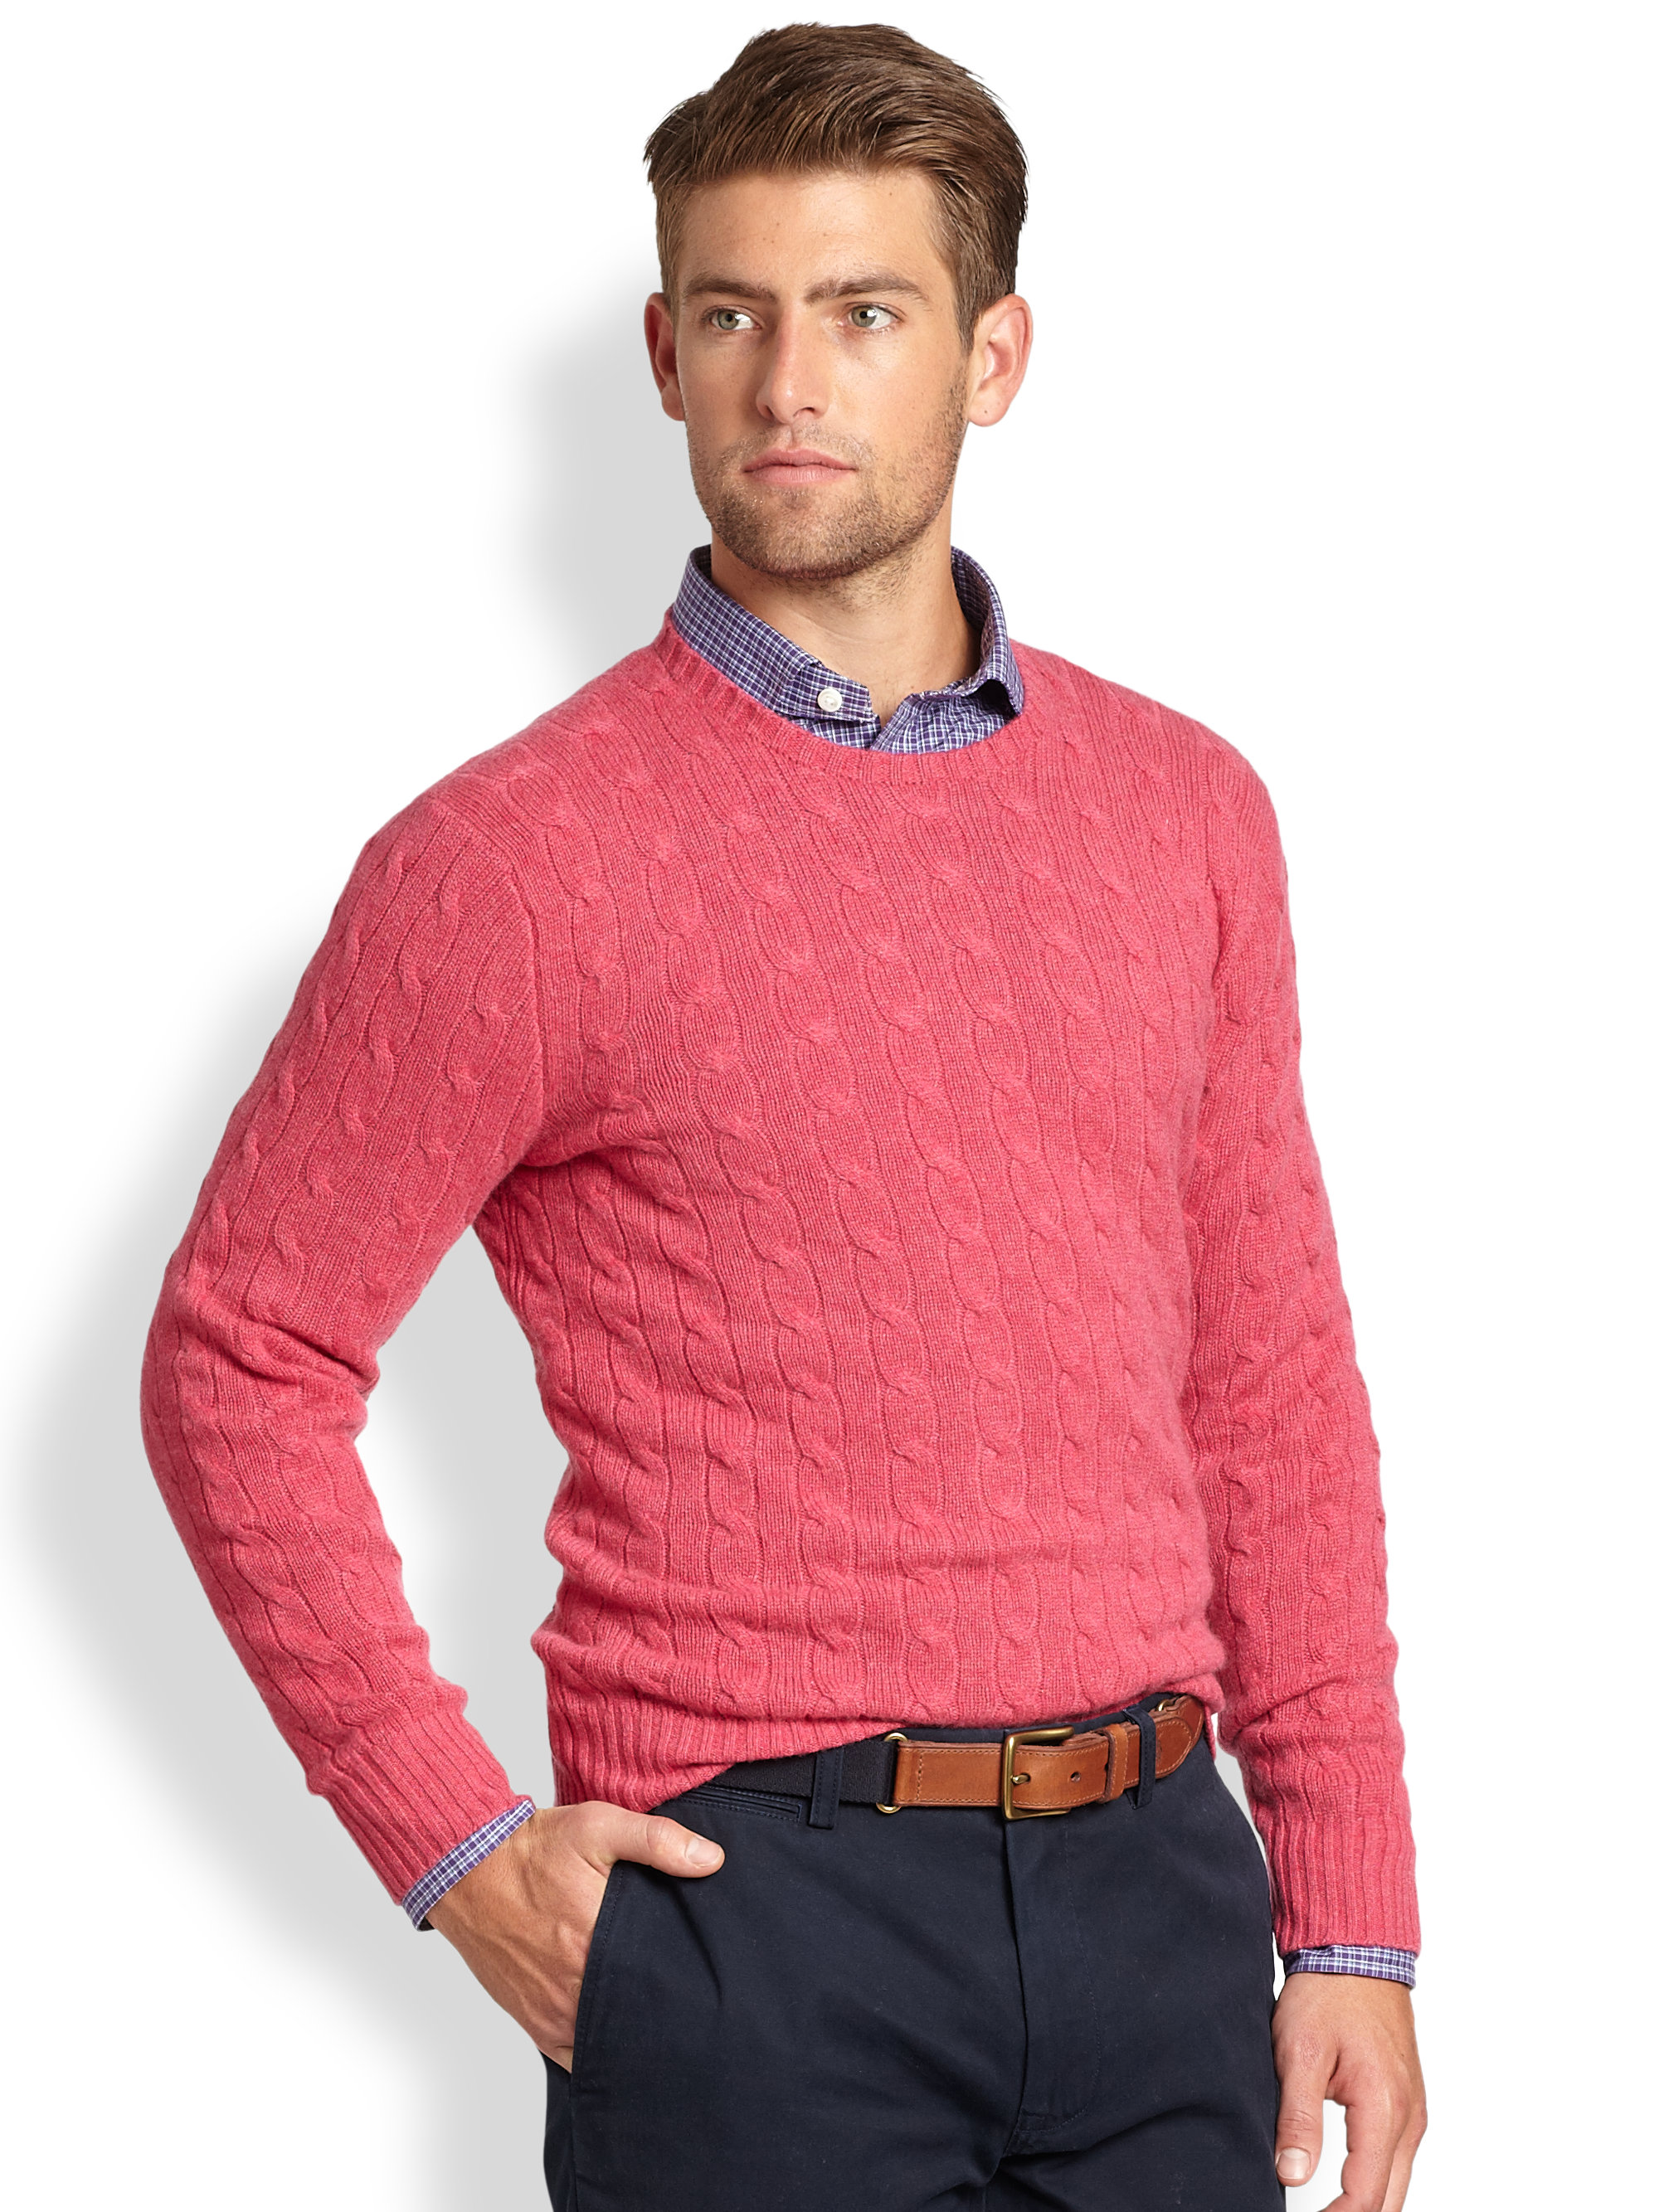 Lyst Polo Ralph Lauren Cable Knit Cashmere Crewneck Sweater In Red